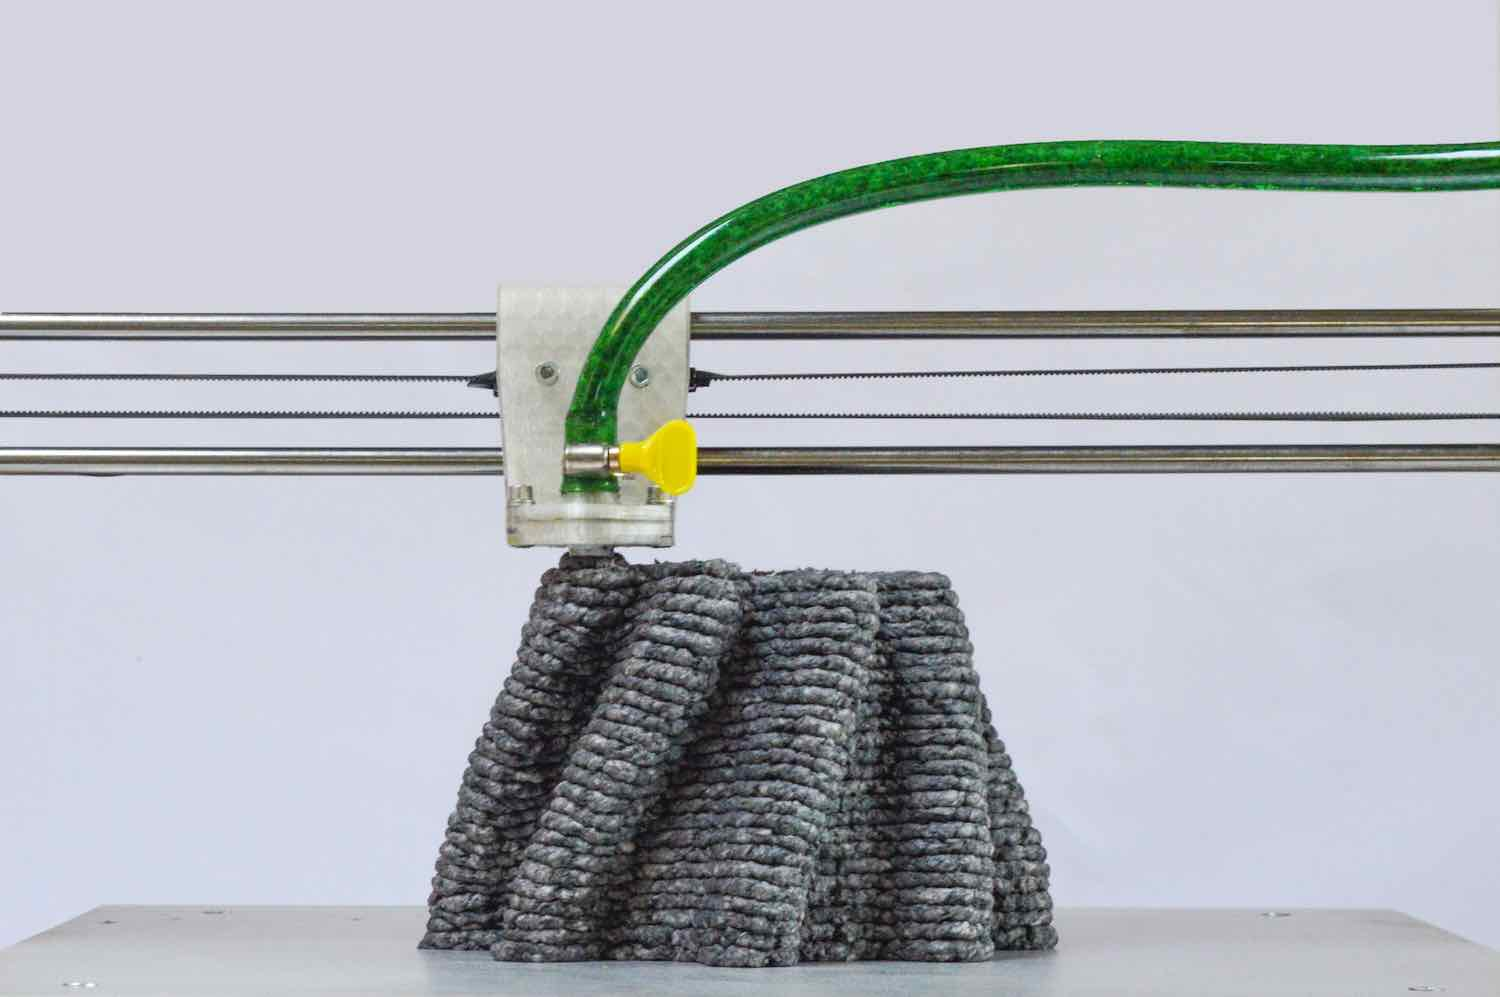 3D-printing paper pulp by Beer Holthuis.